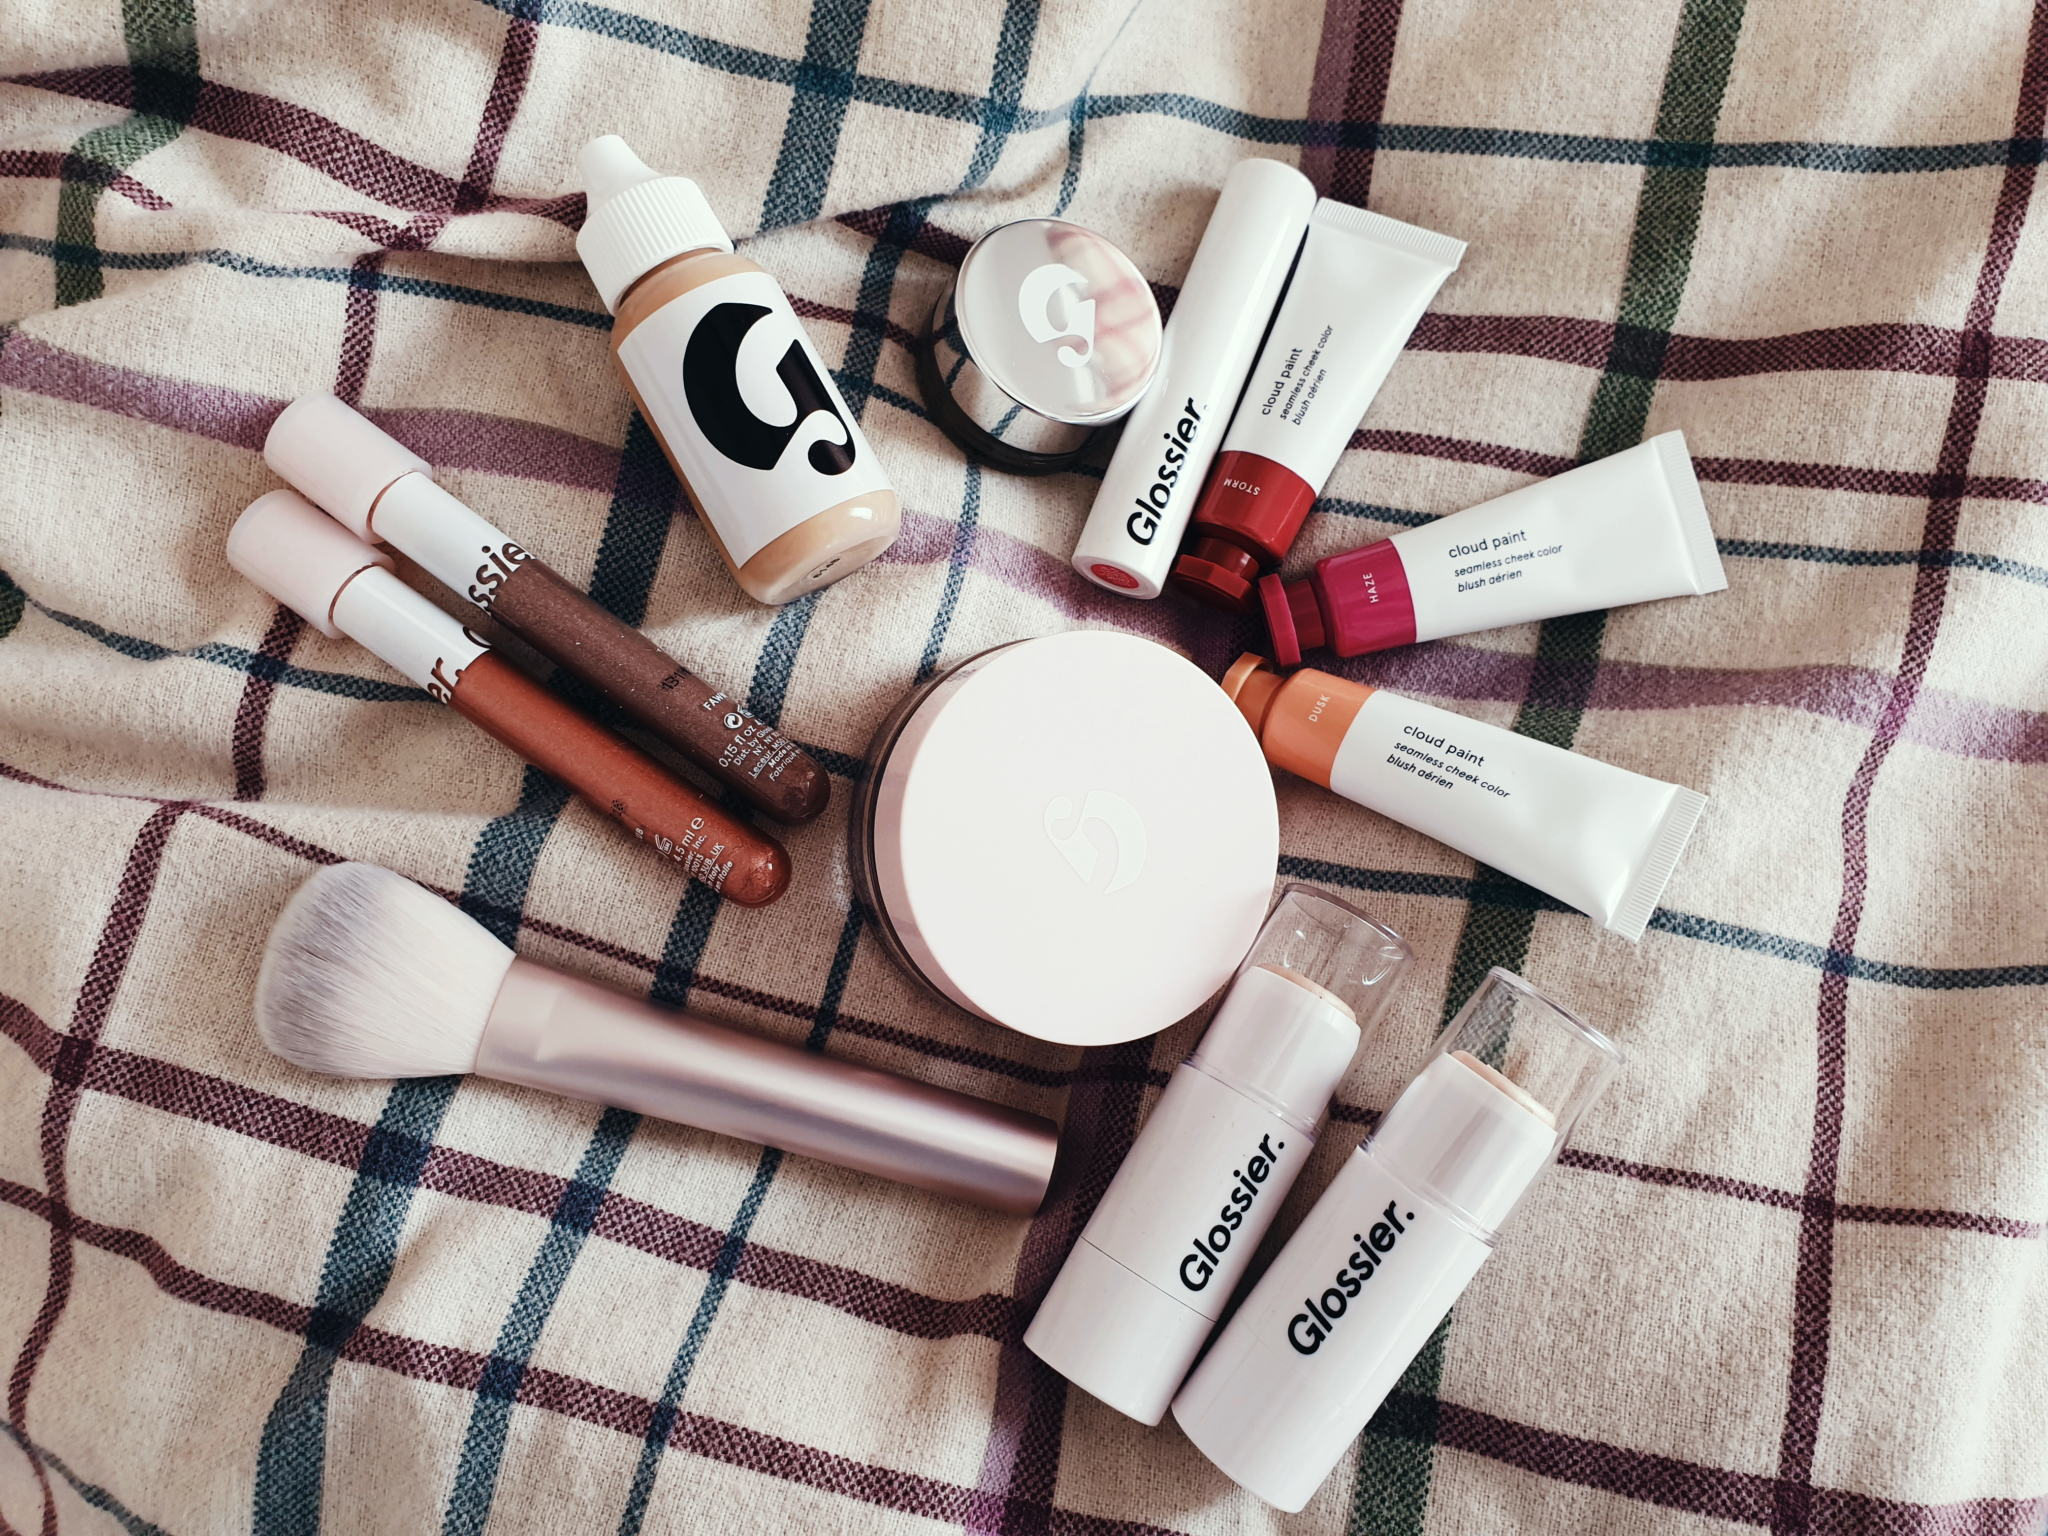 I Tried A Full Face of Glossier Make-up